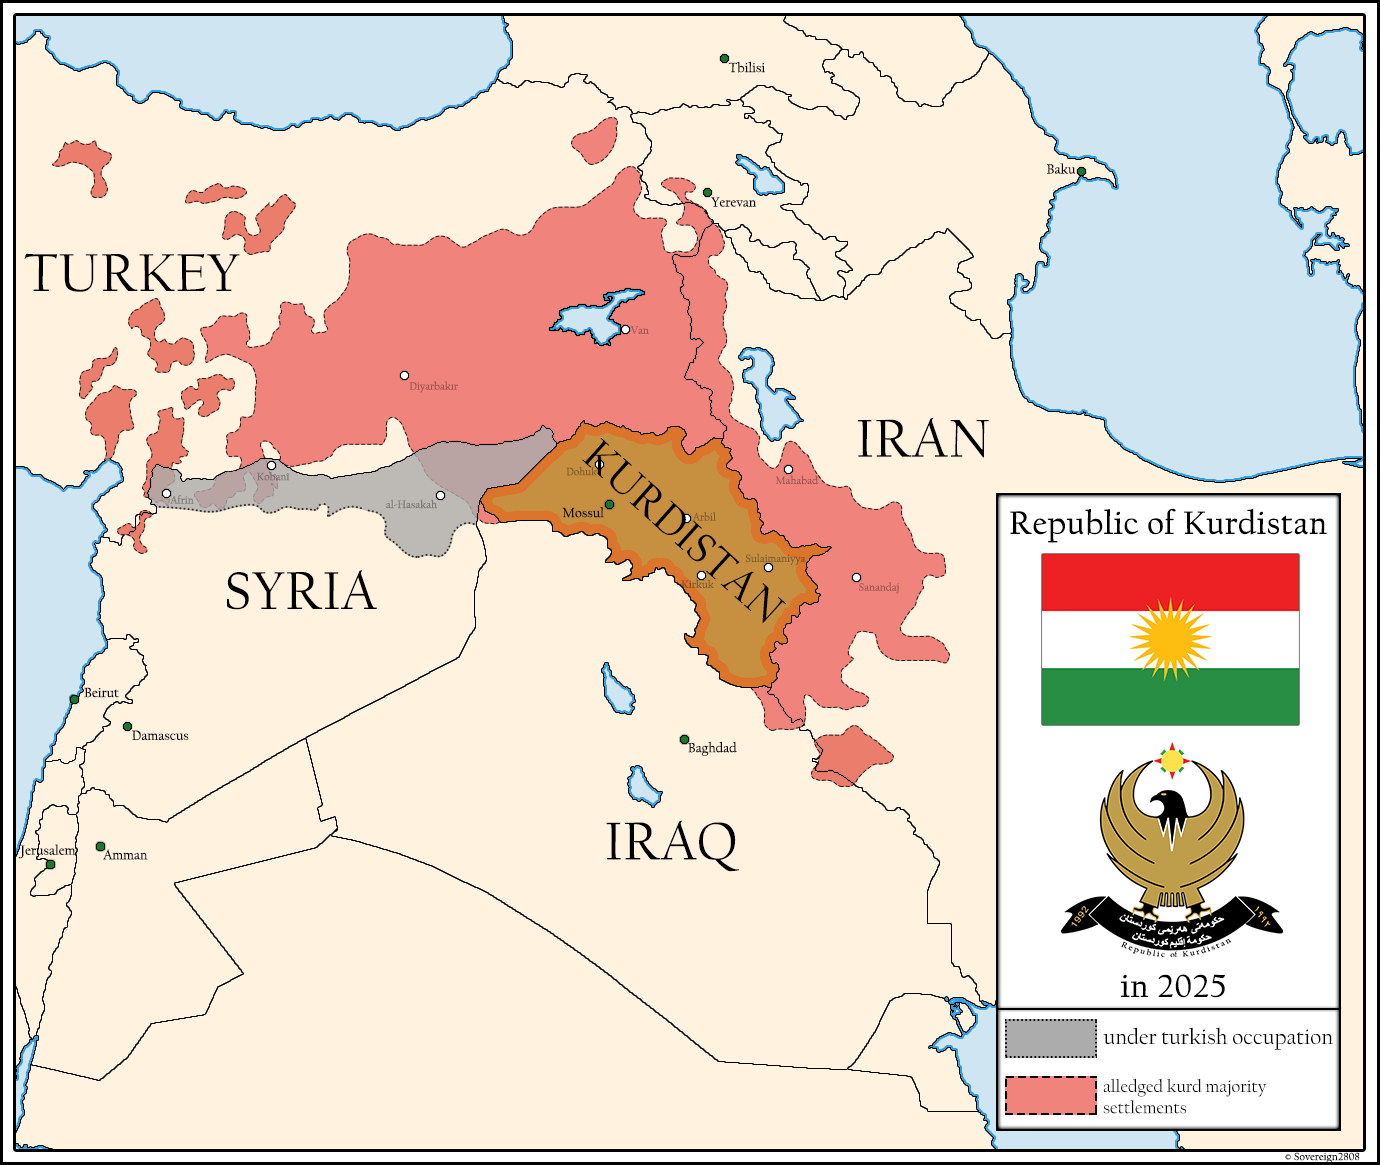 Kurdistan 2025 by Sovereign2808 | Infographic | Map, Fantasy map ...